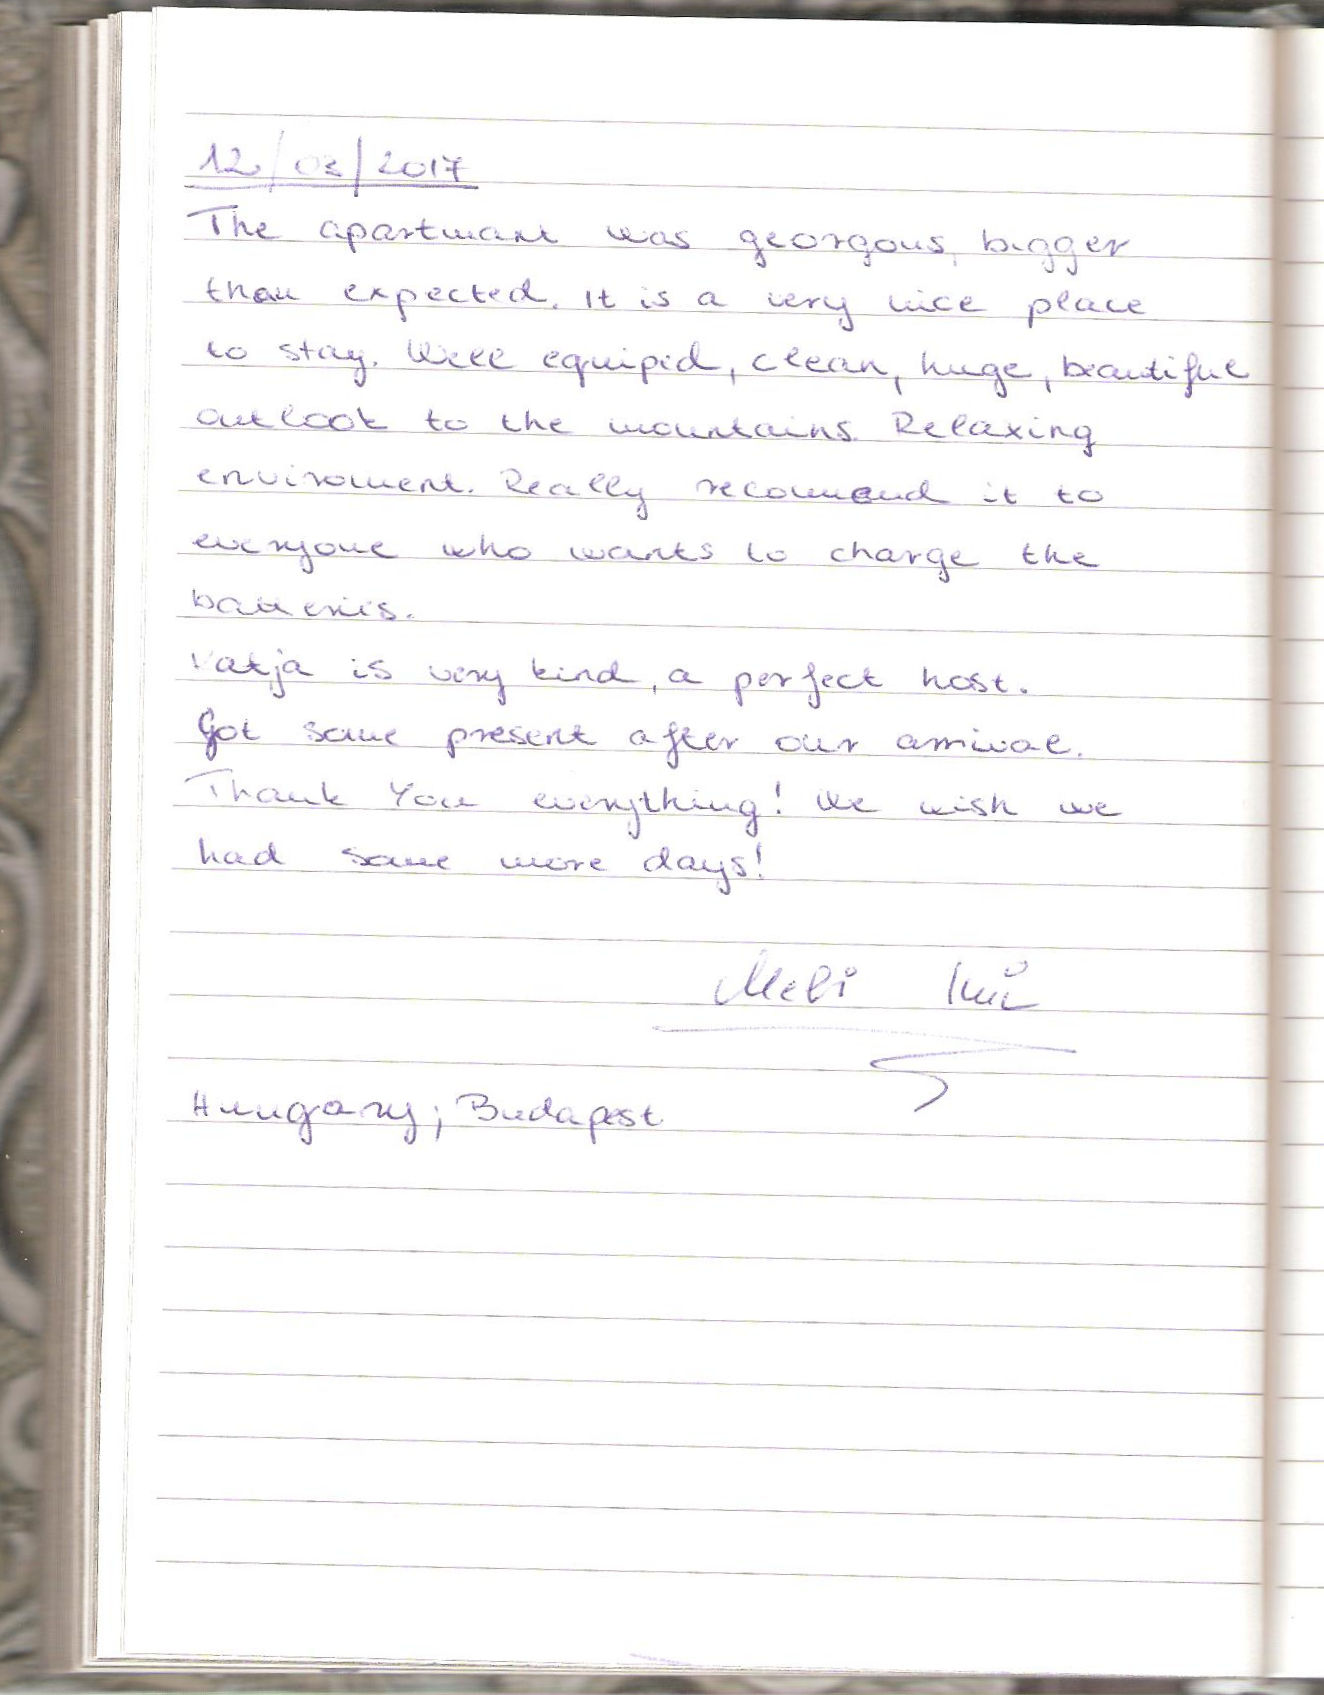 Handwritten Comments In The Guest Book, page 78